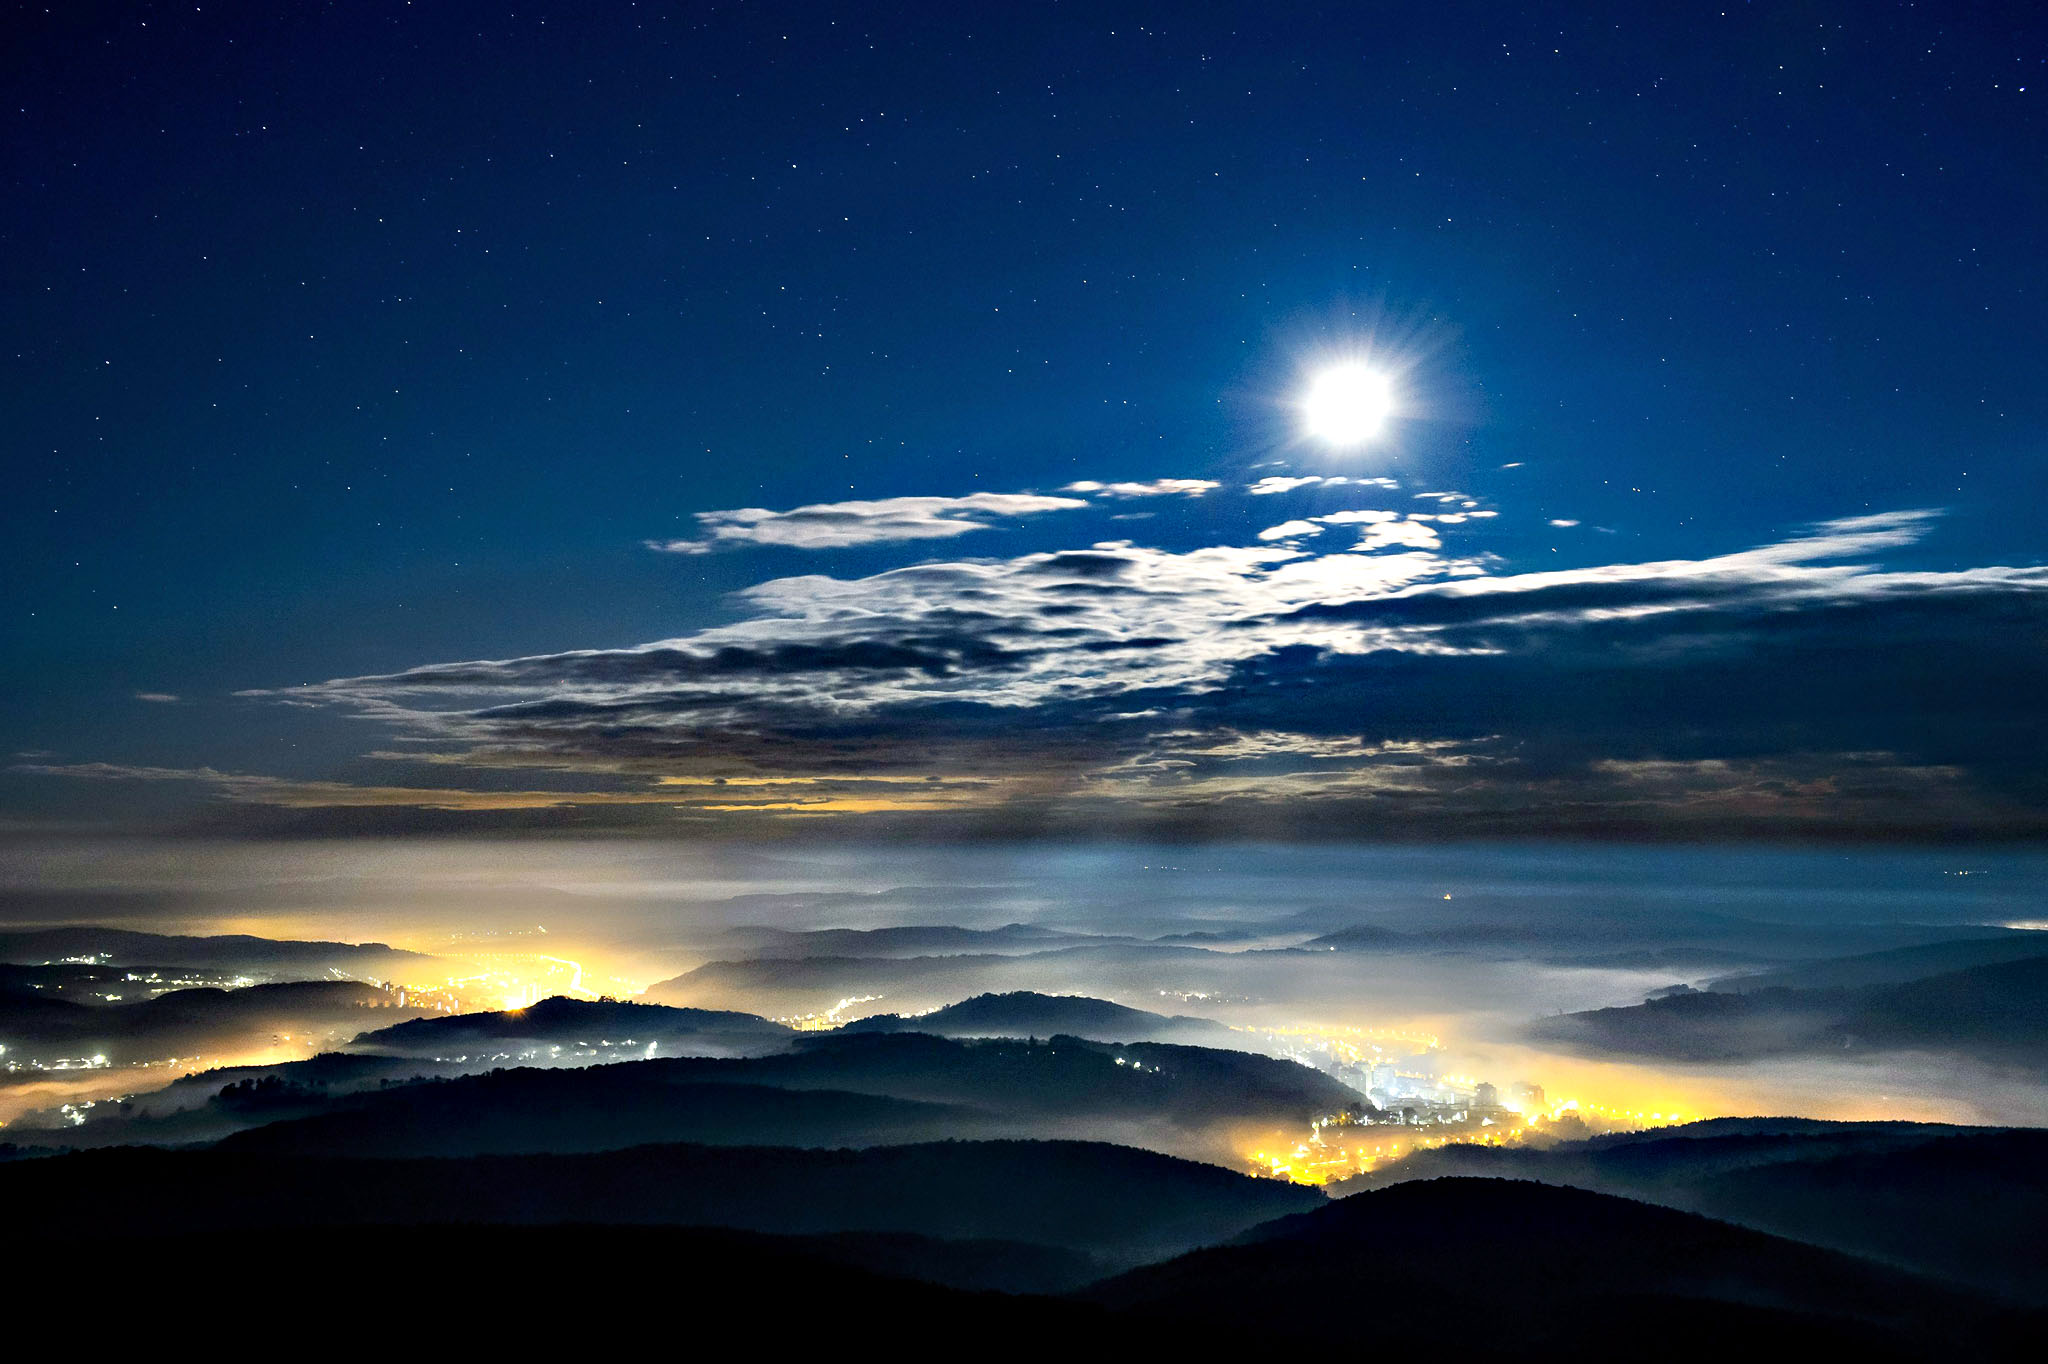 The Moon shining above a mountainous landscape under a cloudy sky near Salgotarjan, some 100km northeast of Budapest, Hungary